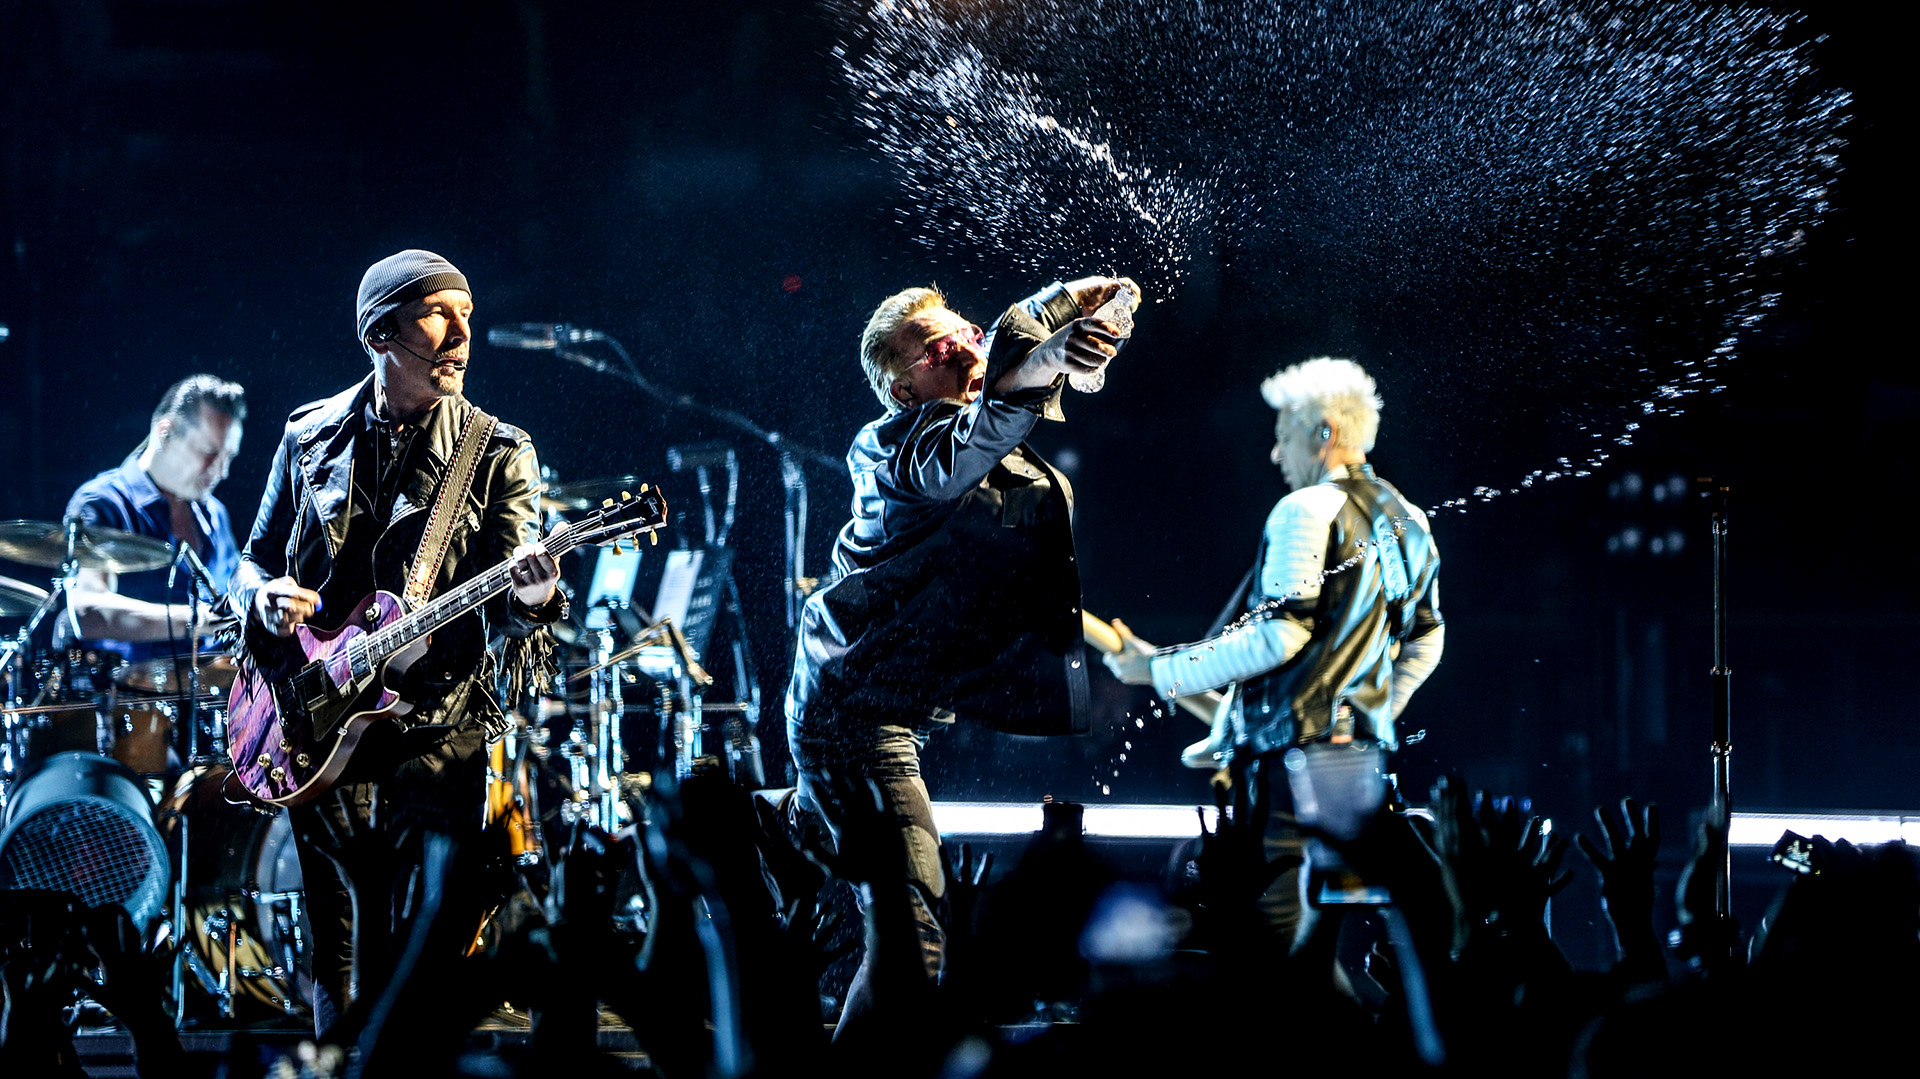 Larry Mullen Jr., The Edge, Bono y Adam Clayton en pleno show, mayo de 2015 (AP)